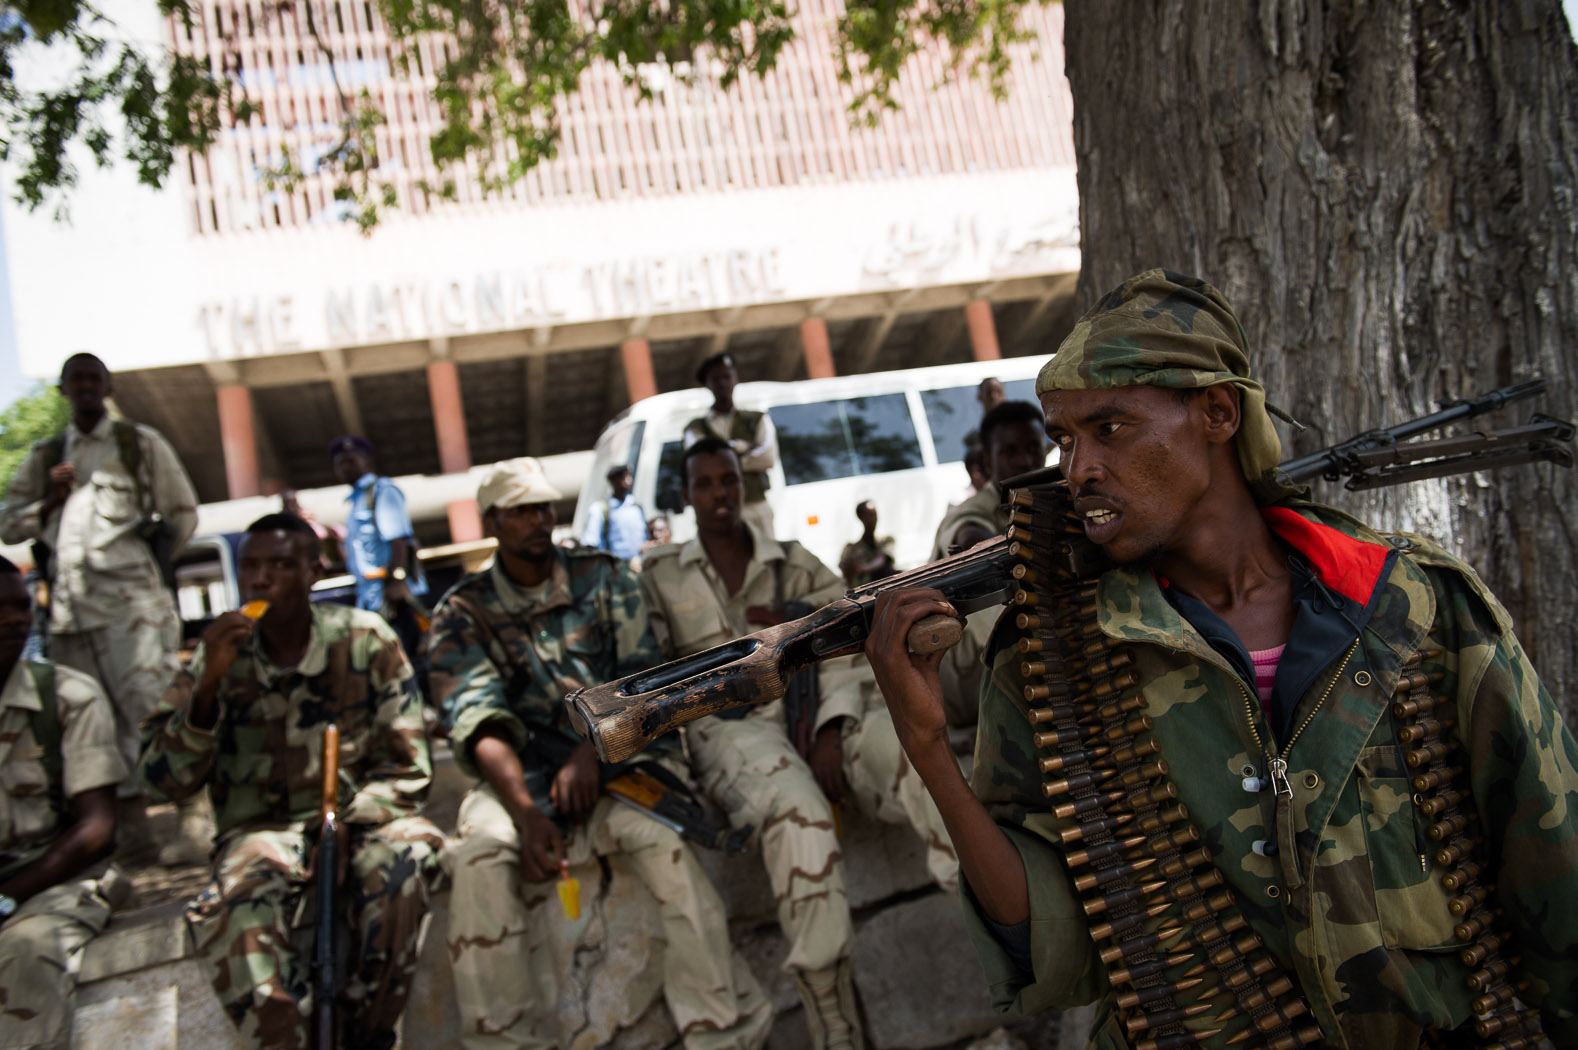 A strong presence of security forces remain in the city, however, with regular insurgent attacks mounted by al-Shabaab.